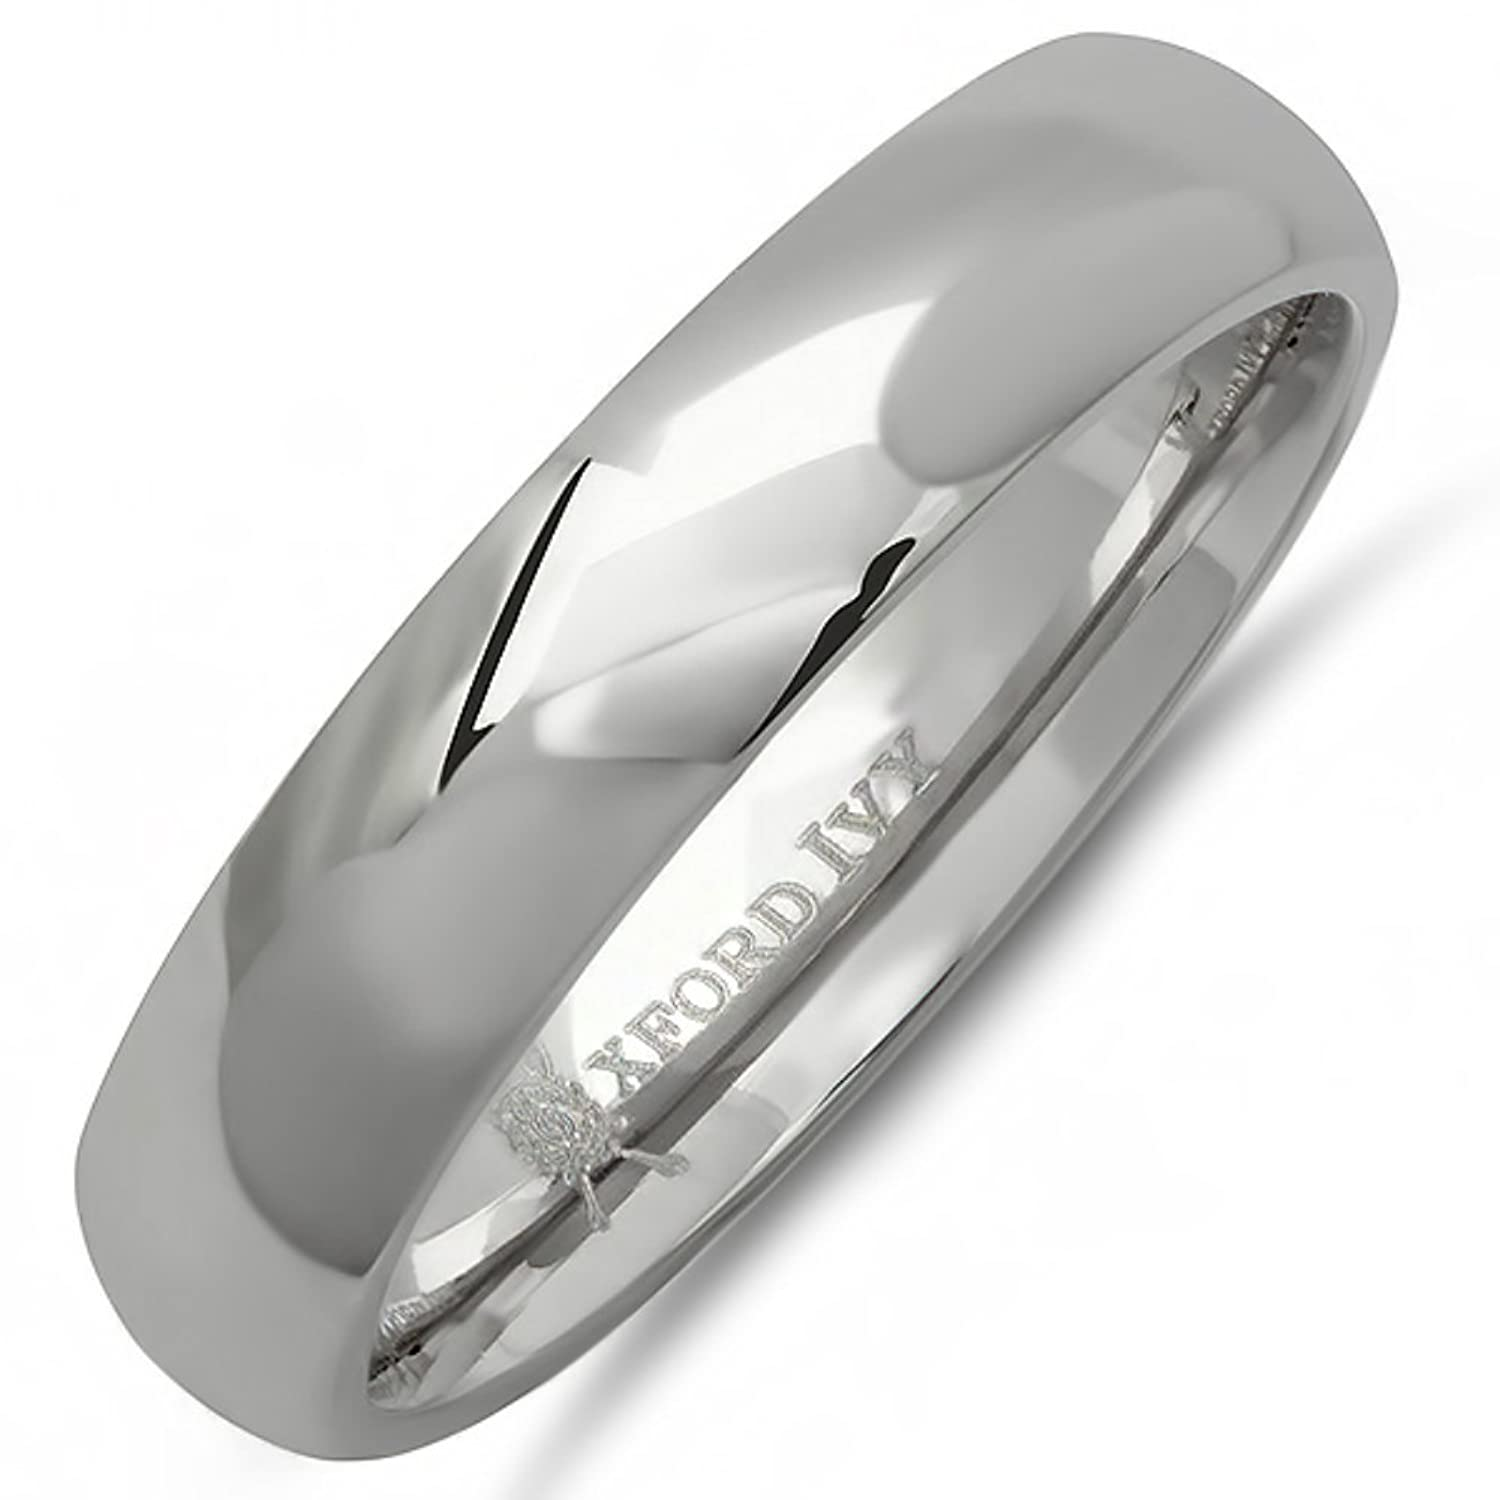 girl wedding rings to product platinum girls sterling online you moon and wholesale ring back plain jewelry the bands love for store band silver